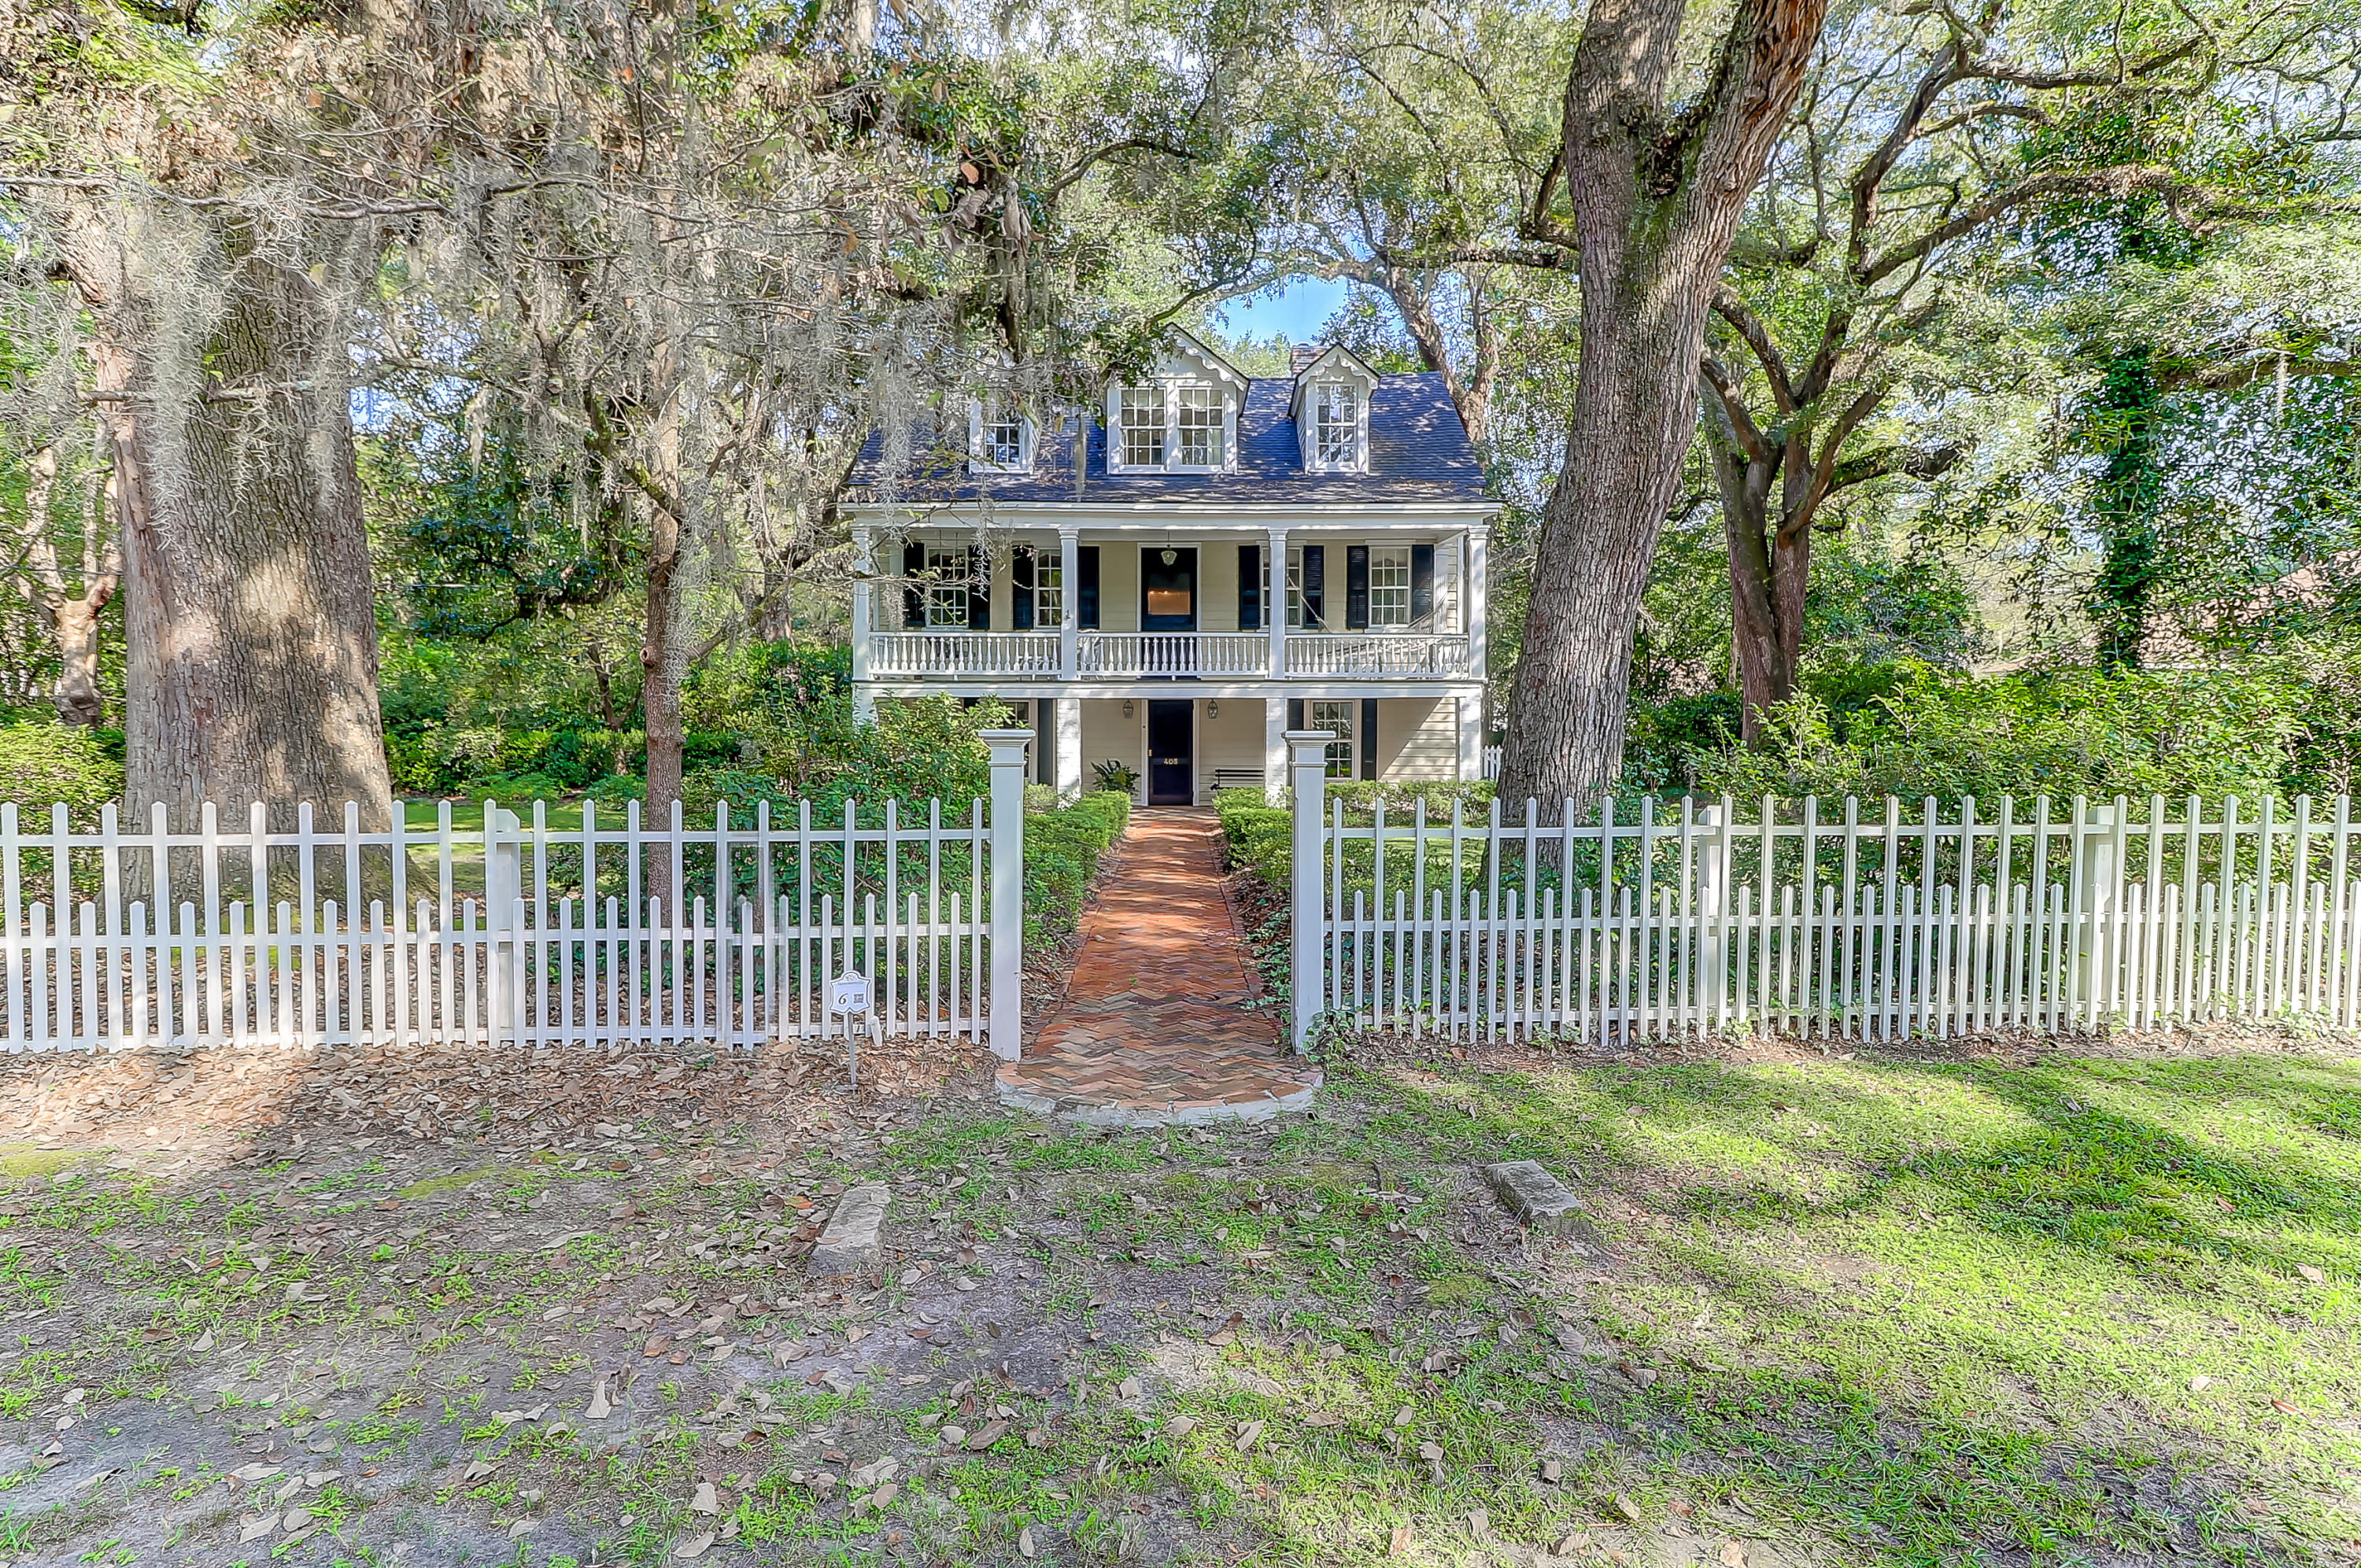 Photo of 408 Sumter Ave, Summerville, SC 29483